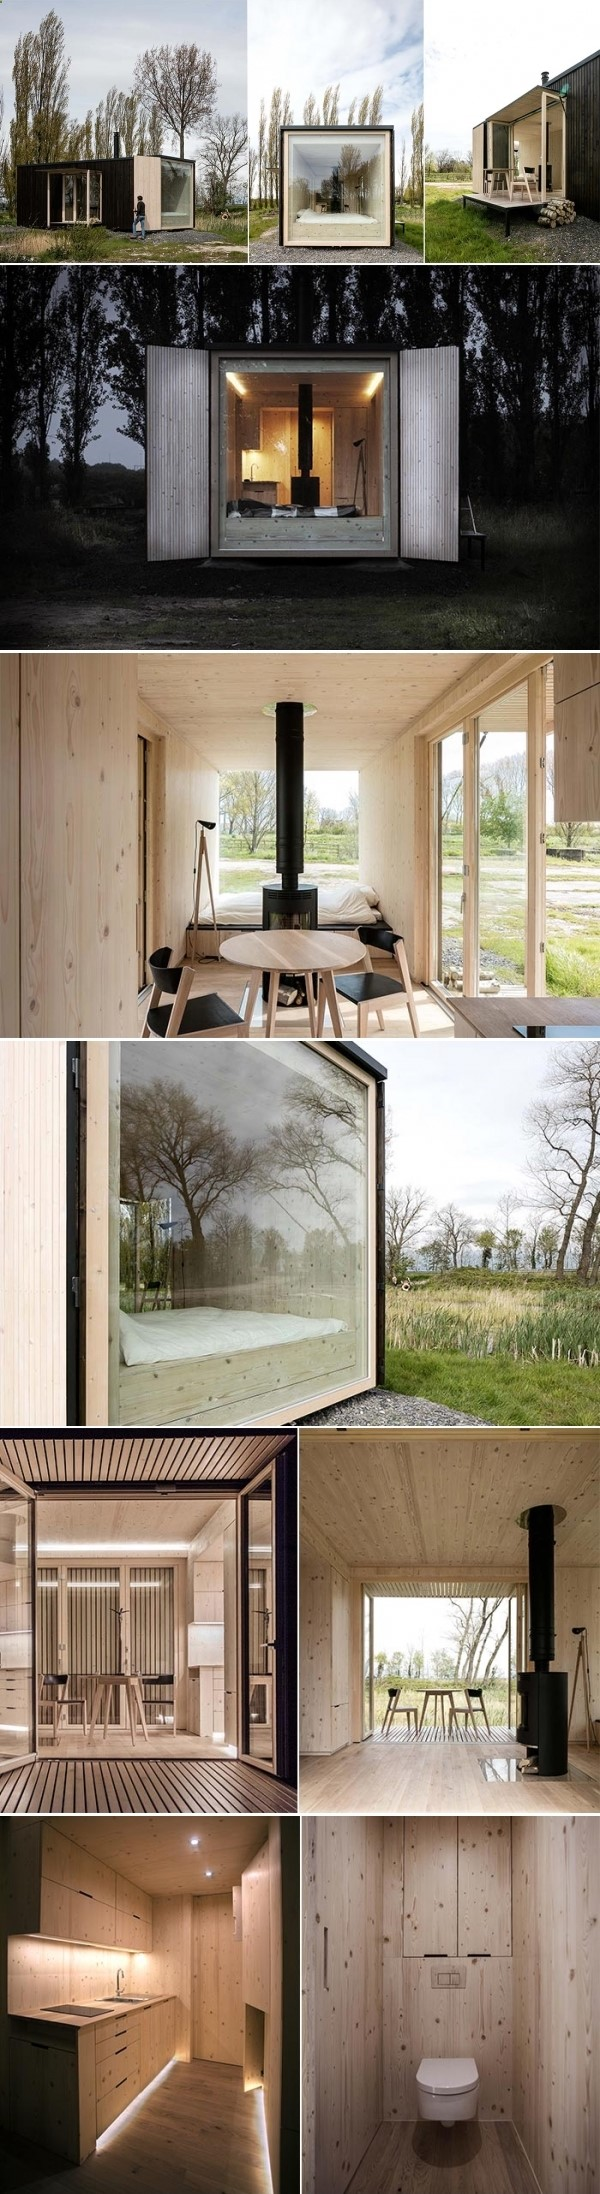 Container house ark shelter prefabricated cabins more who else